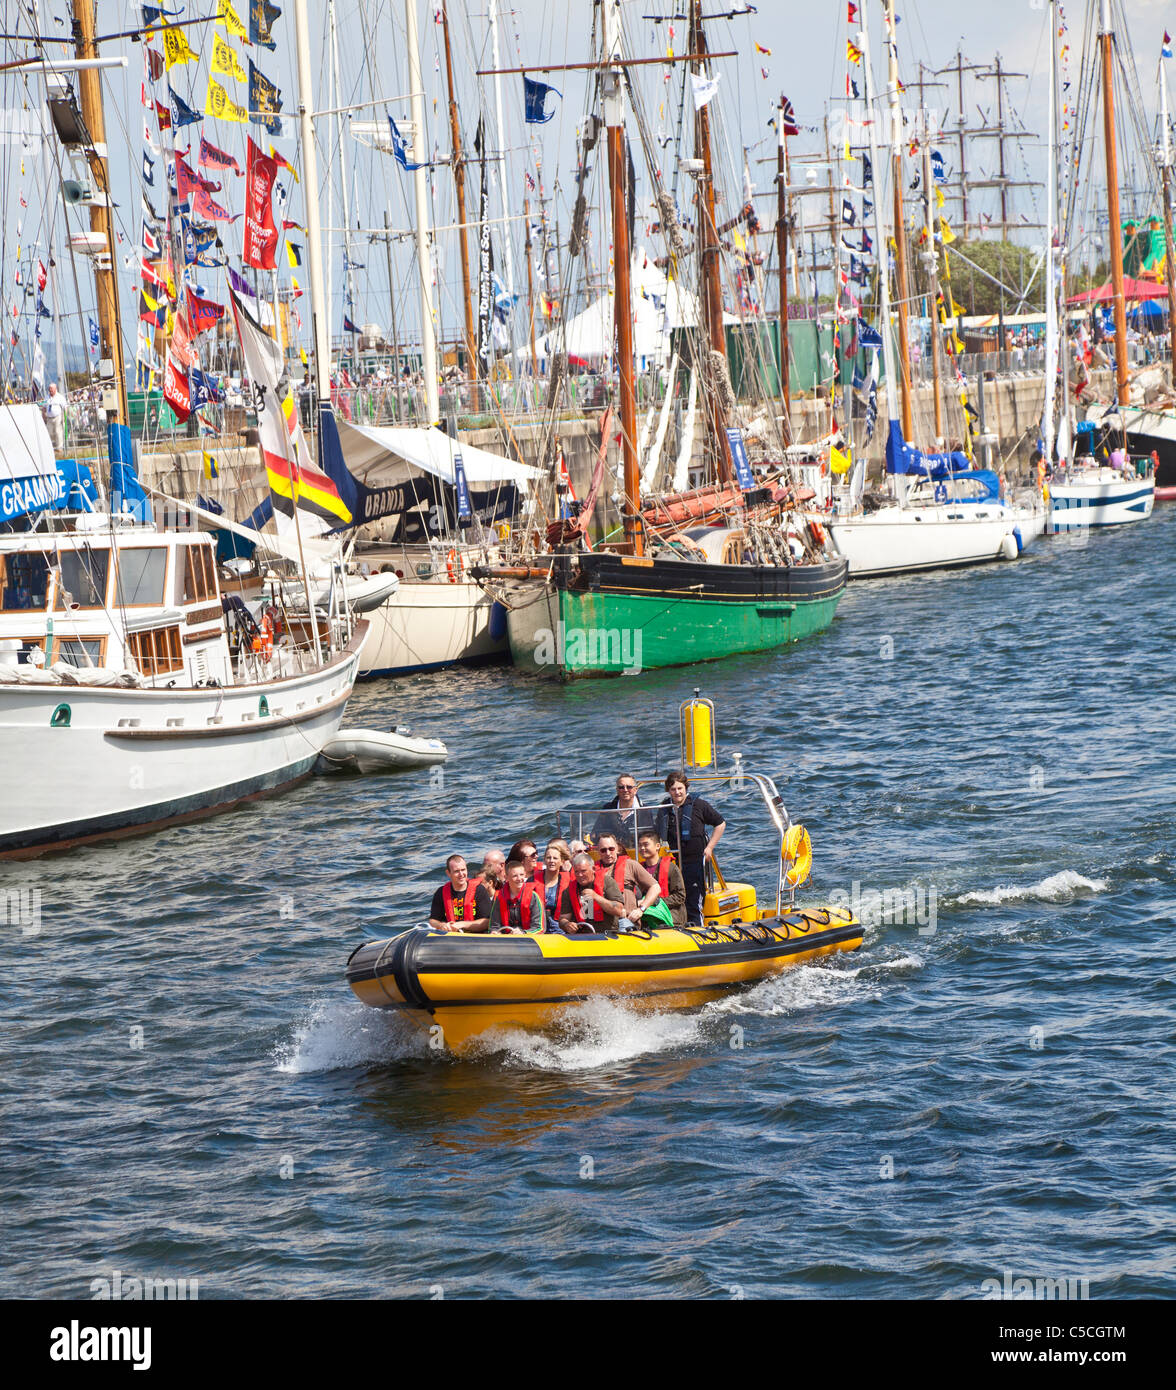 Passengers on a Rigid Inflatable Boat (RIB) pass between the sailing ships in the Tall Ships Race 2011 at Greenock, - Stock Image